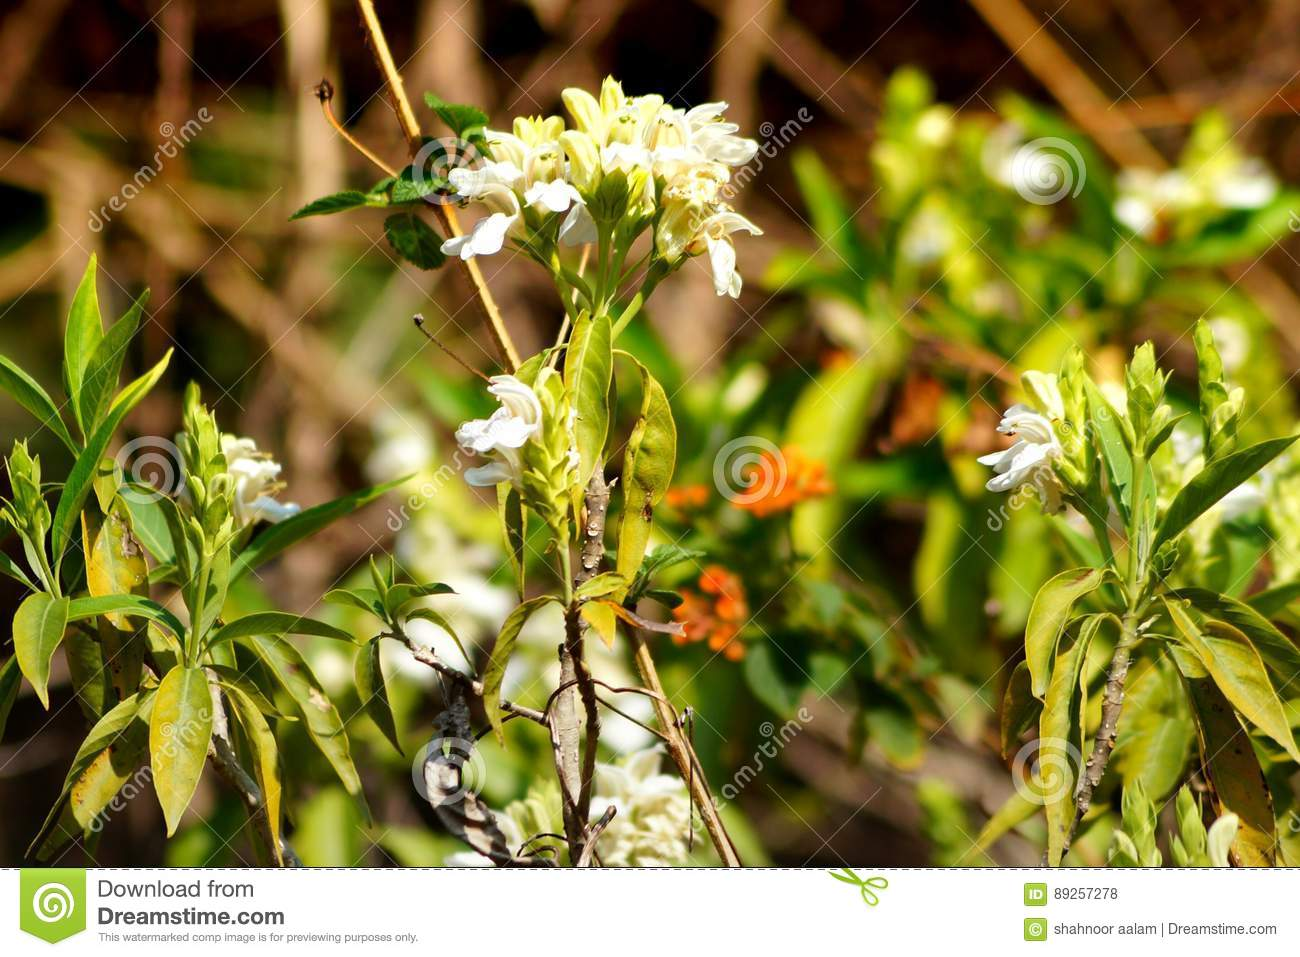 Grass Flowers And White Mind Blowing Flowers Stock Photo Image Of